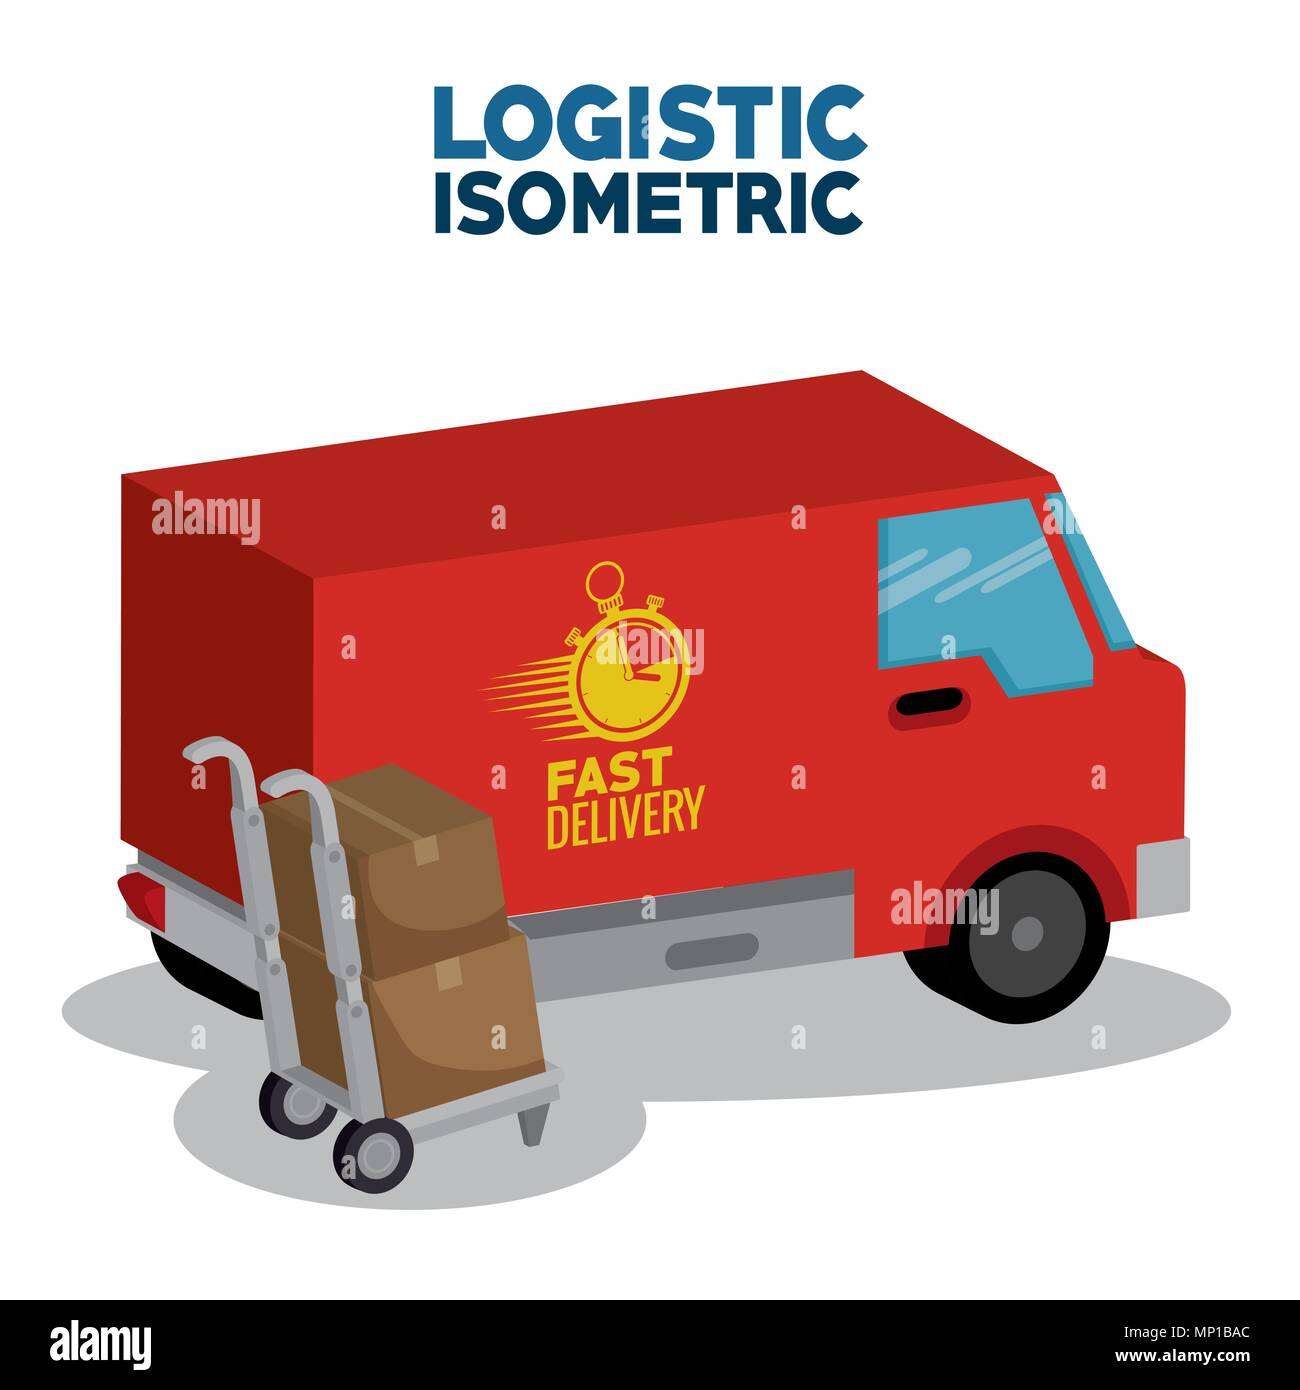 delivery service concept with van vehicle - Stock Image